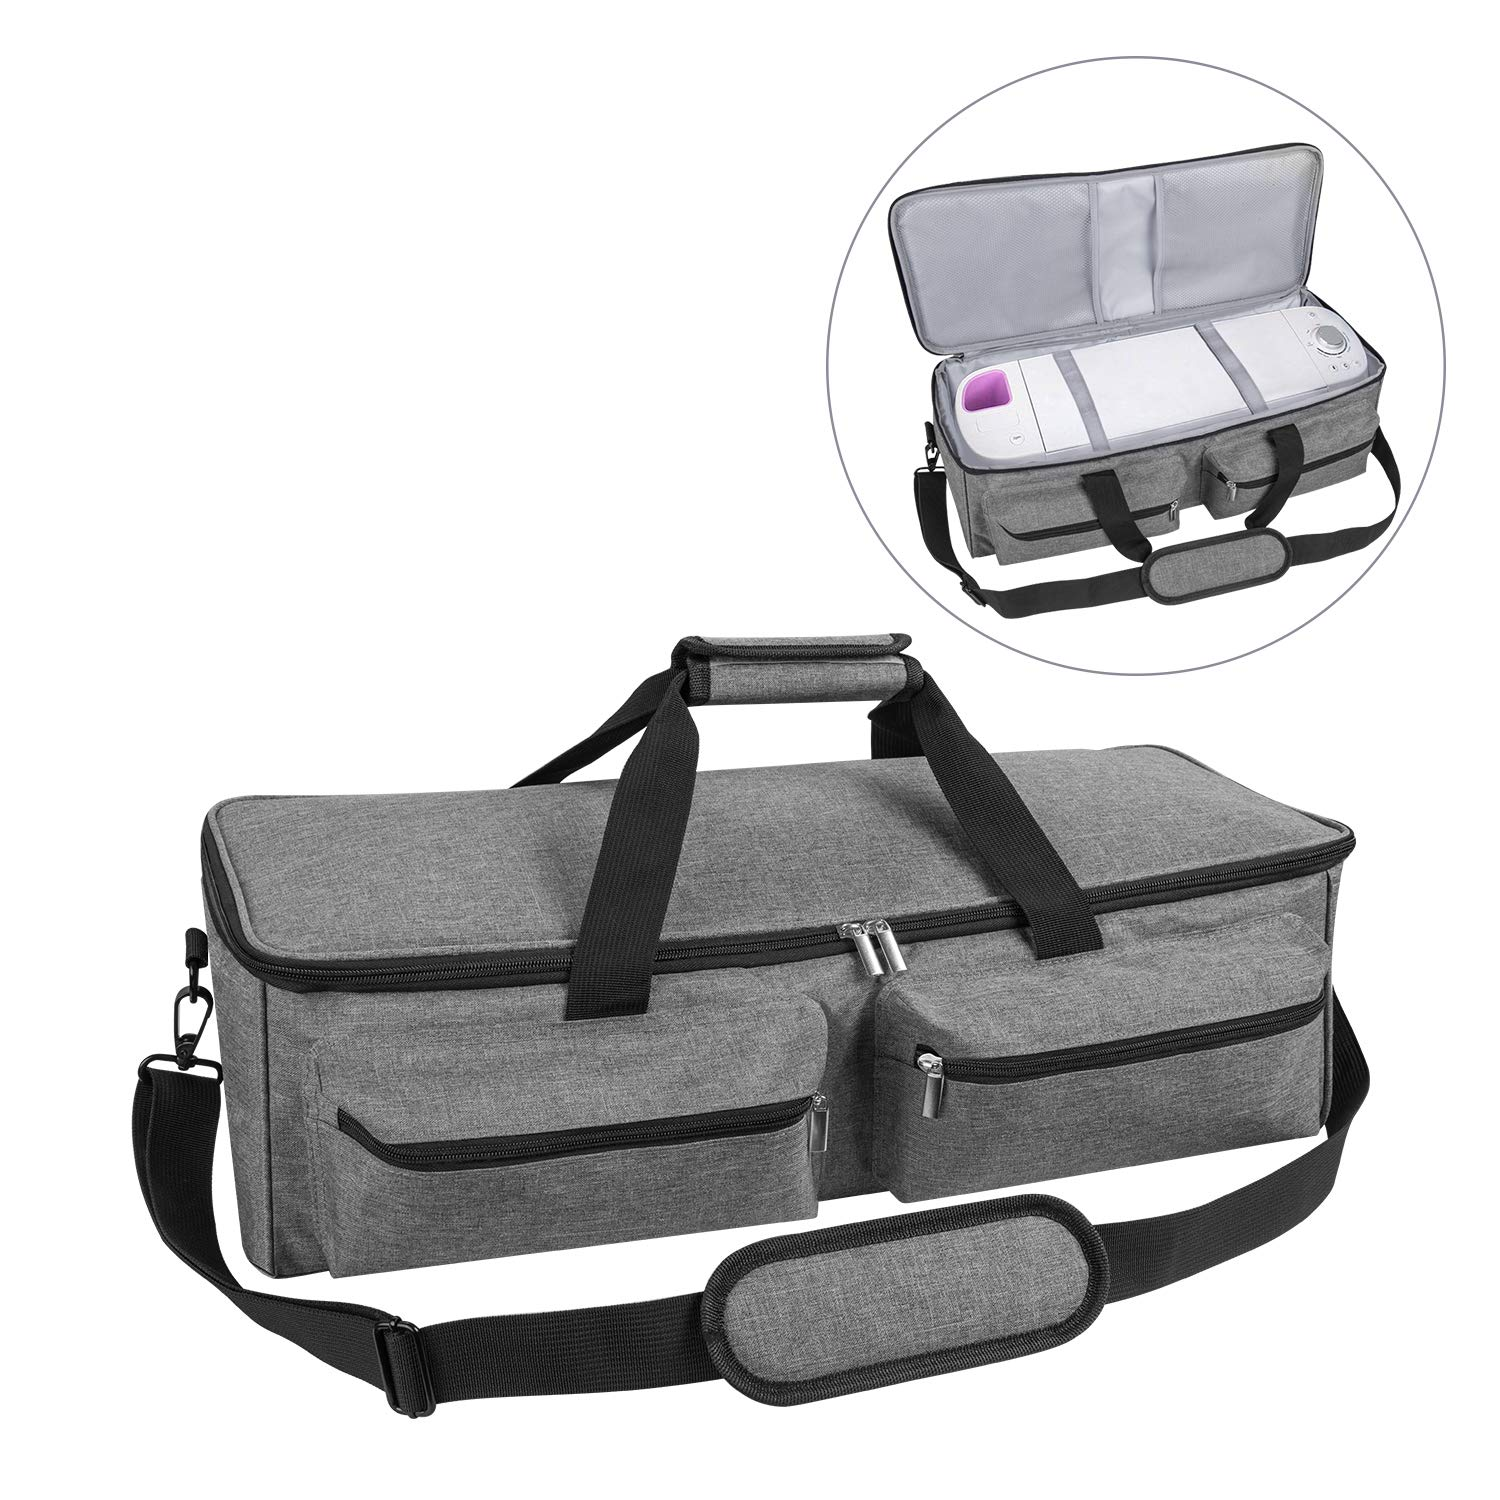 JOYPEA Carrying Bag Compatible with Cricut Explore Air and Maker, Tote Bag Compatible with Cricut Explore Air and Supplies (Bag Only), Made of Heavy-Duty Nylon,Gray (Grey)